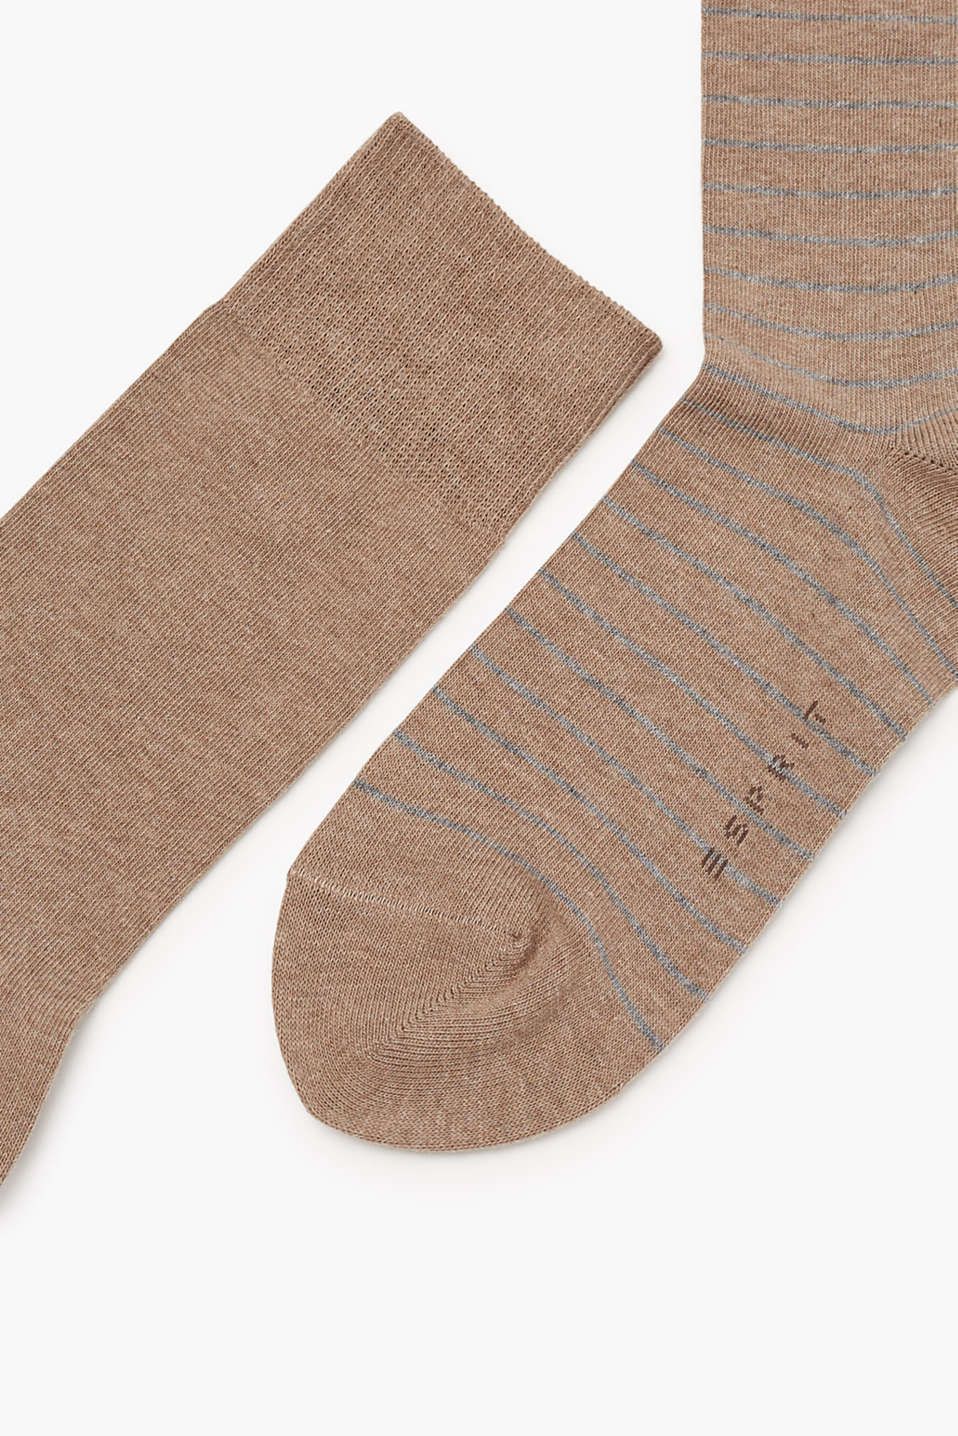 Two pack of socks, plain and with stripes